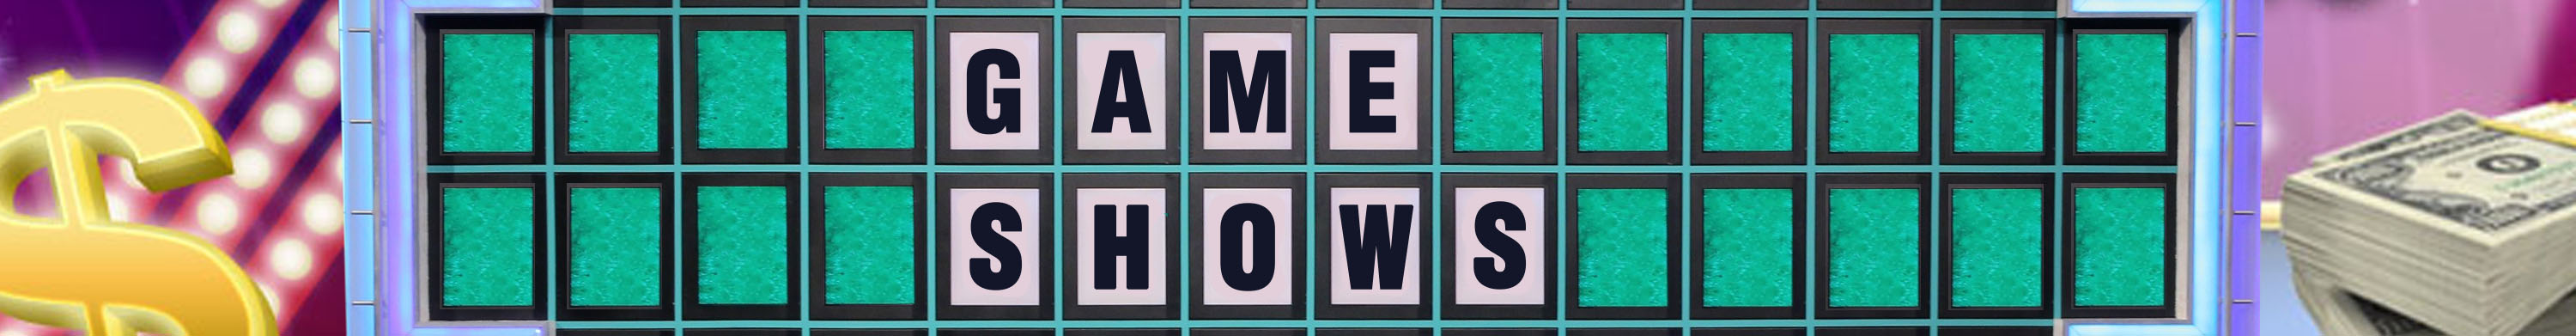 Entertainment Banner Game Shows